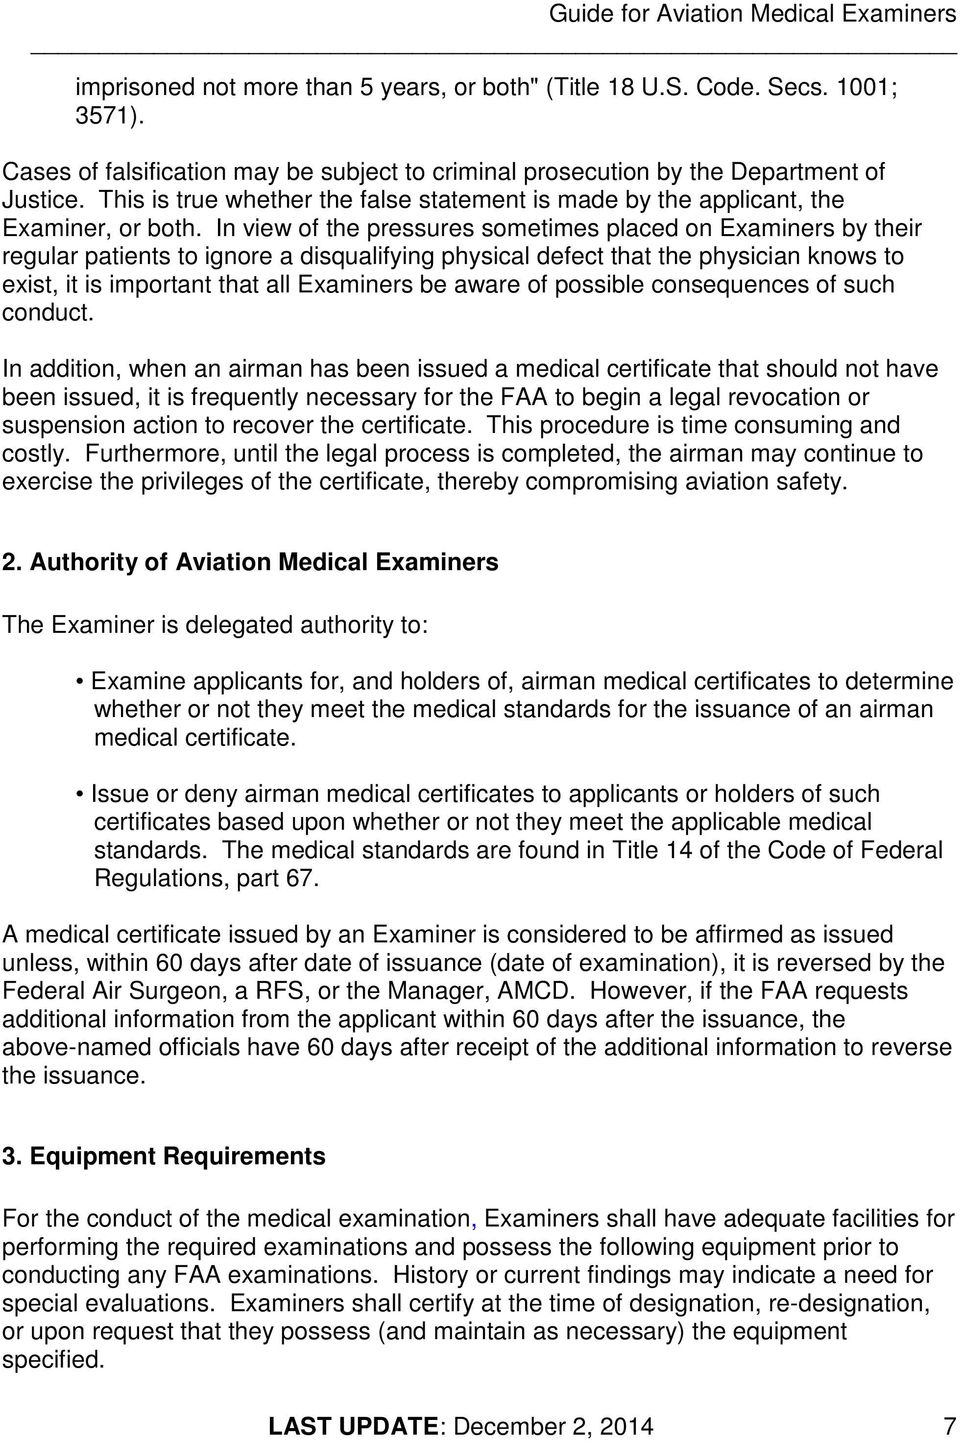 GUIDE FOR AVIATION MEDICAL EXAMINERS - PDF